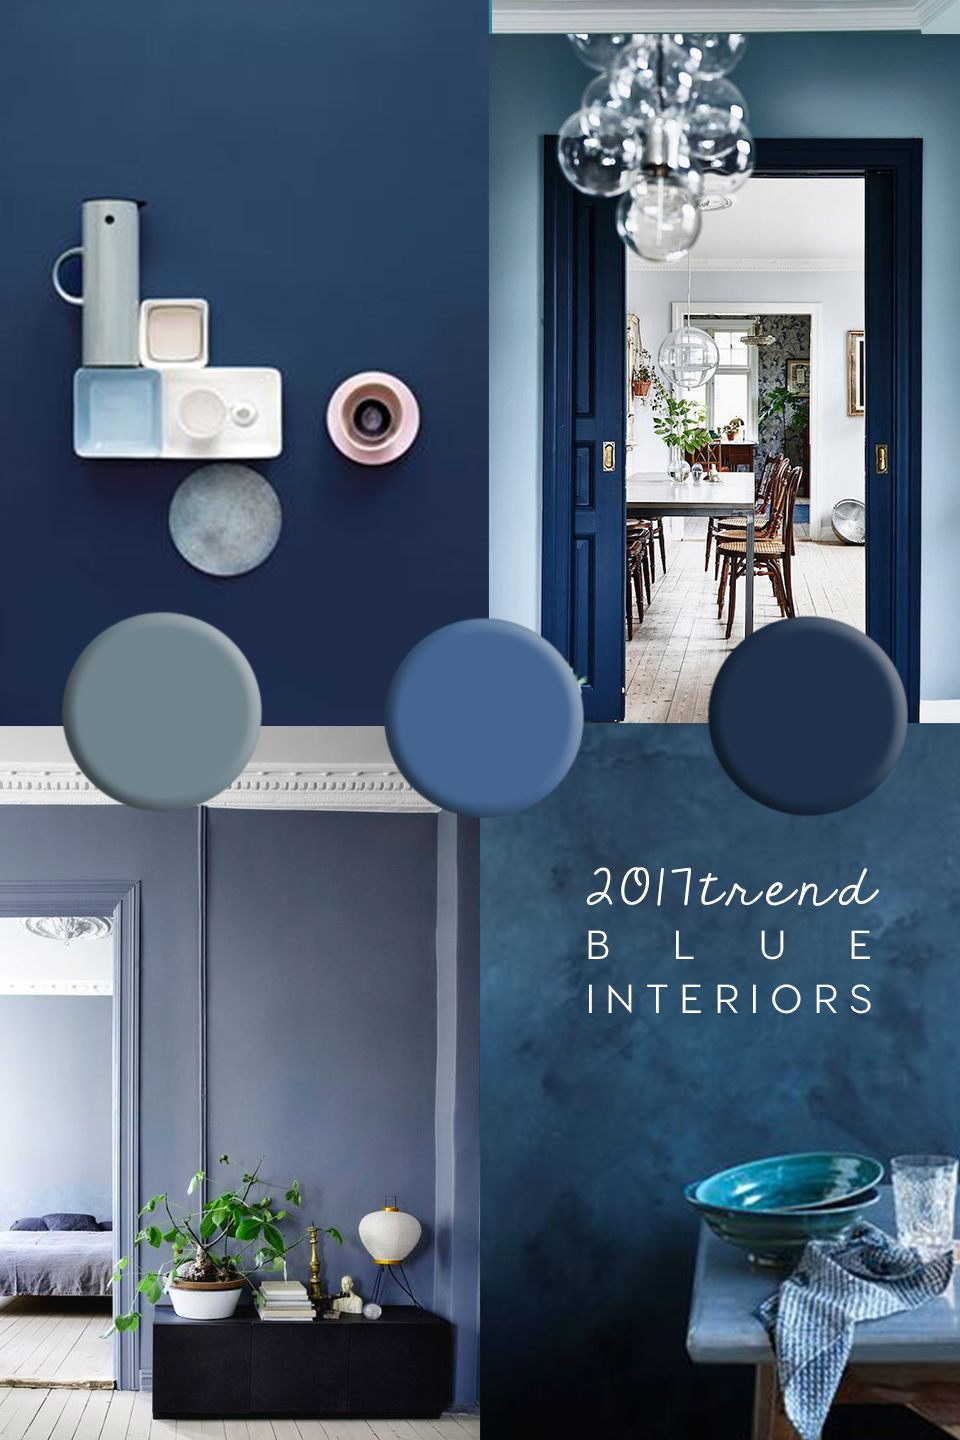 Blue Interior Trend Interior Paint Colors 2017 Colorful